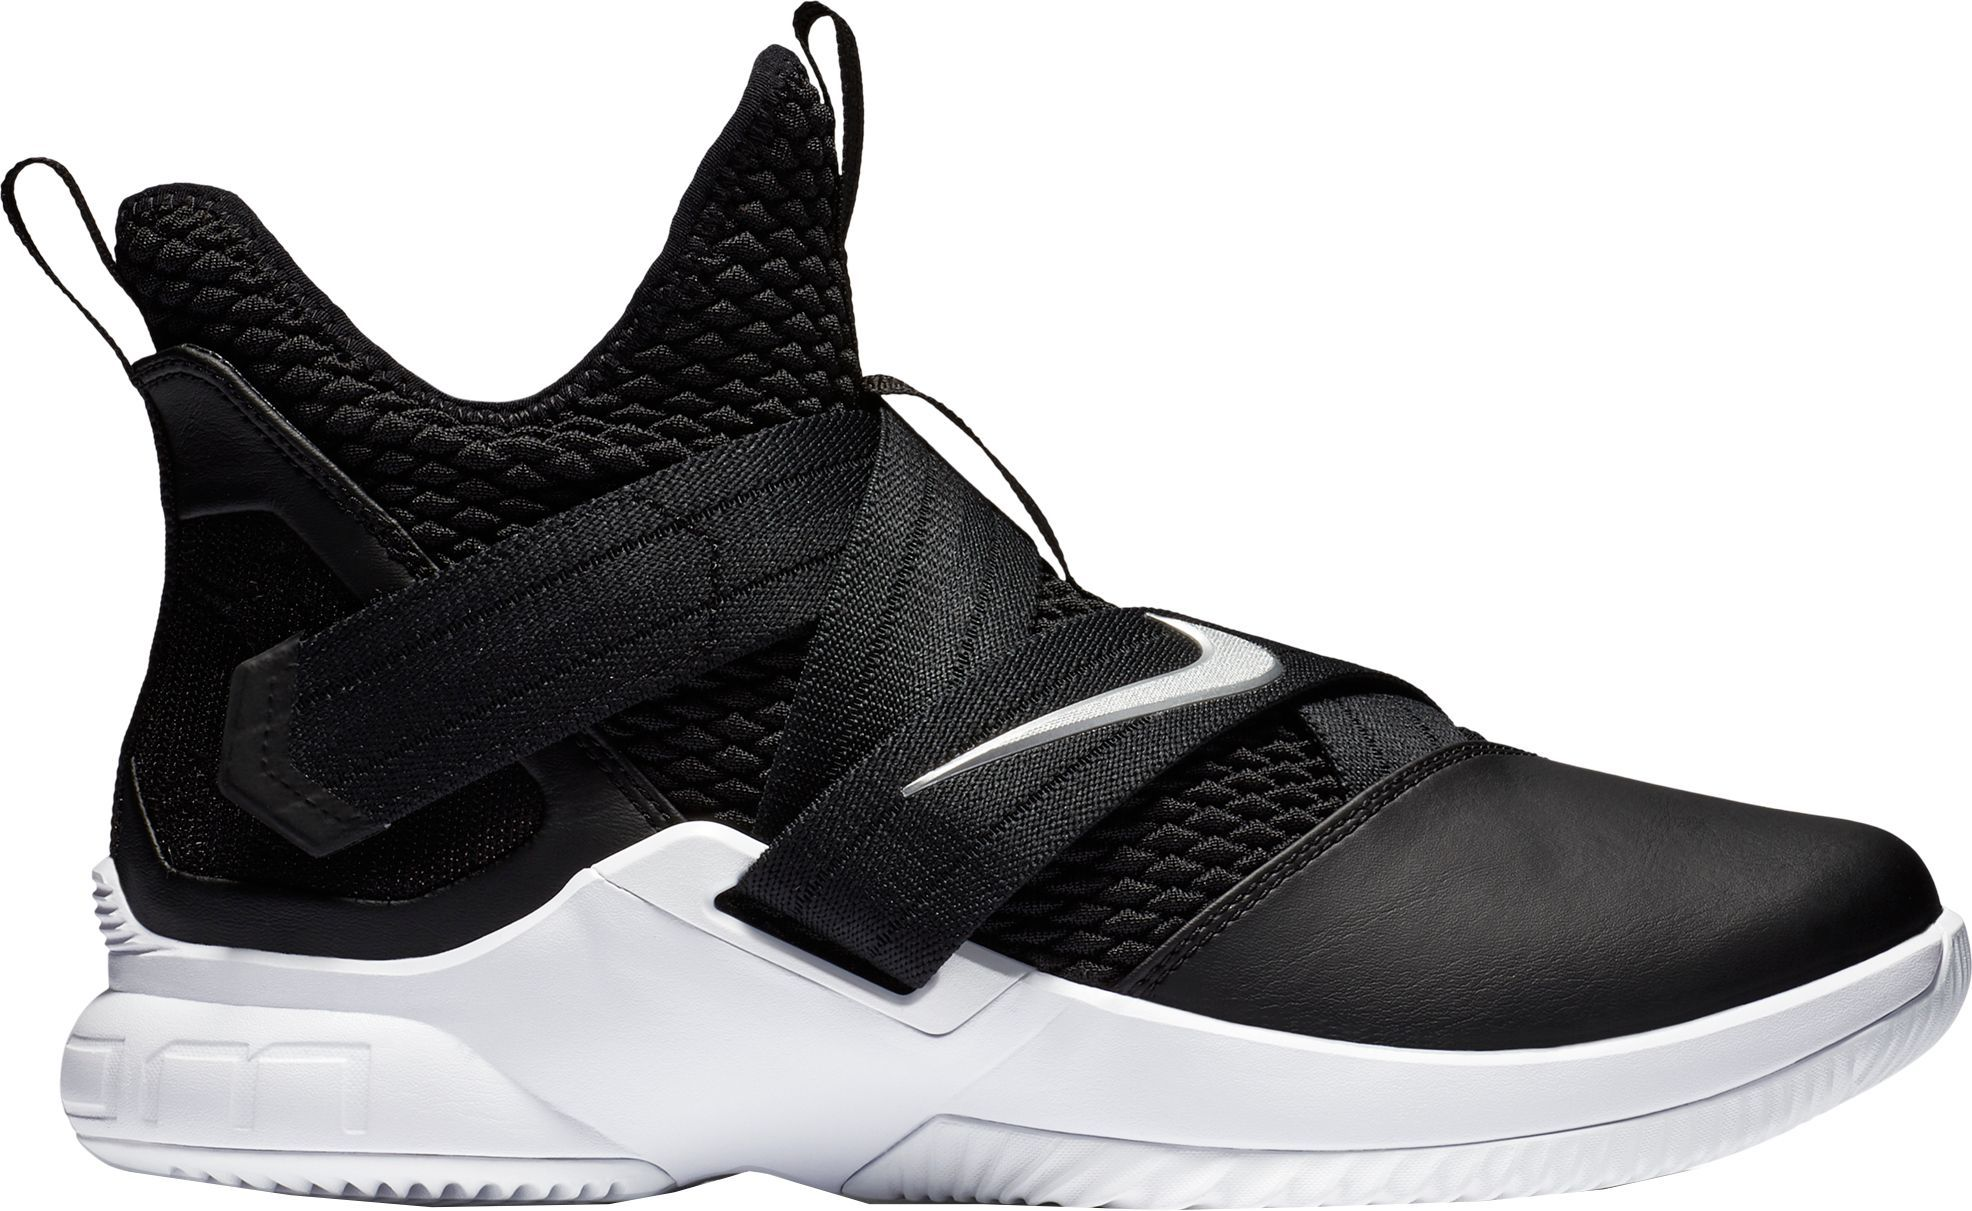 finest selection c2c82 bfa4a Nike Zoom LeBron Soldier XII TB Basketball Shoes, Men's in 2019 ...